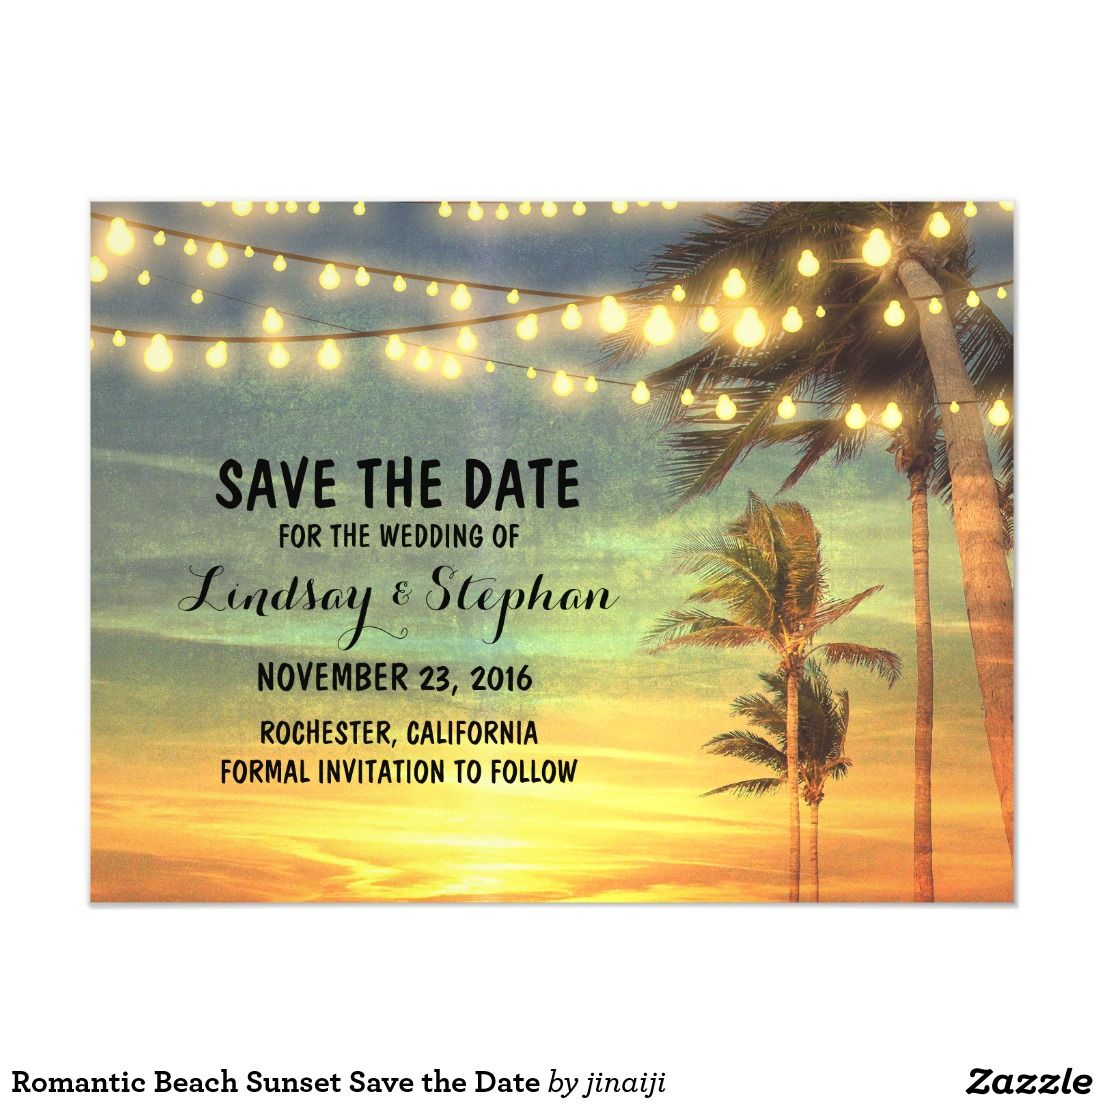 Romantic Beach Sunset Save the Date Magnetic Card String lights and beach sunset romantic save the date magnetic invitations